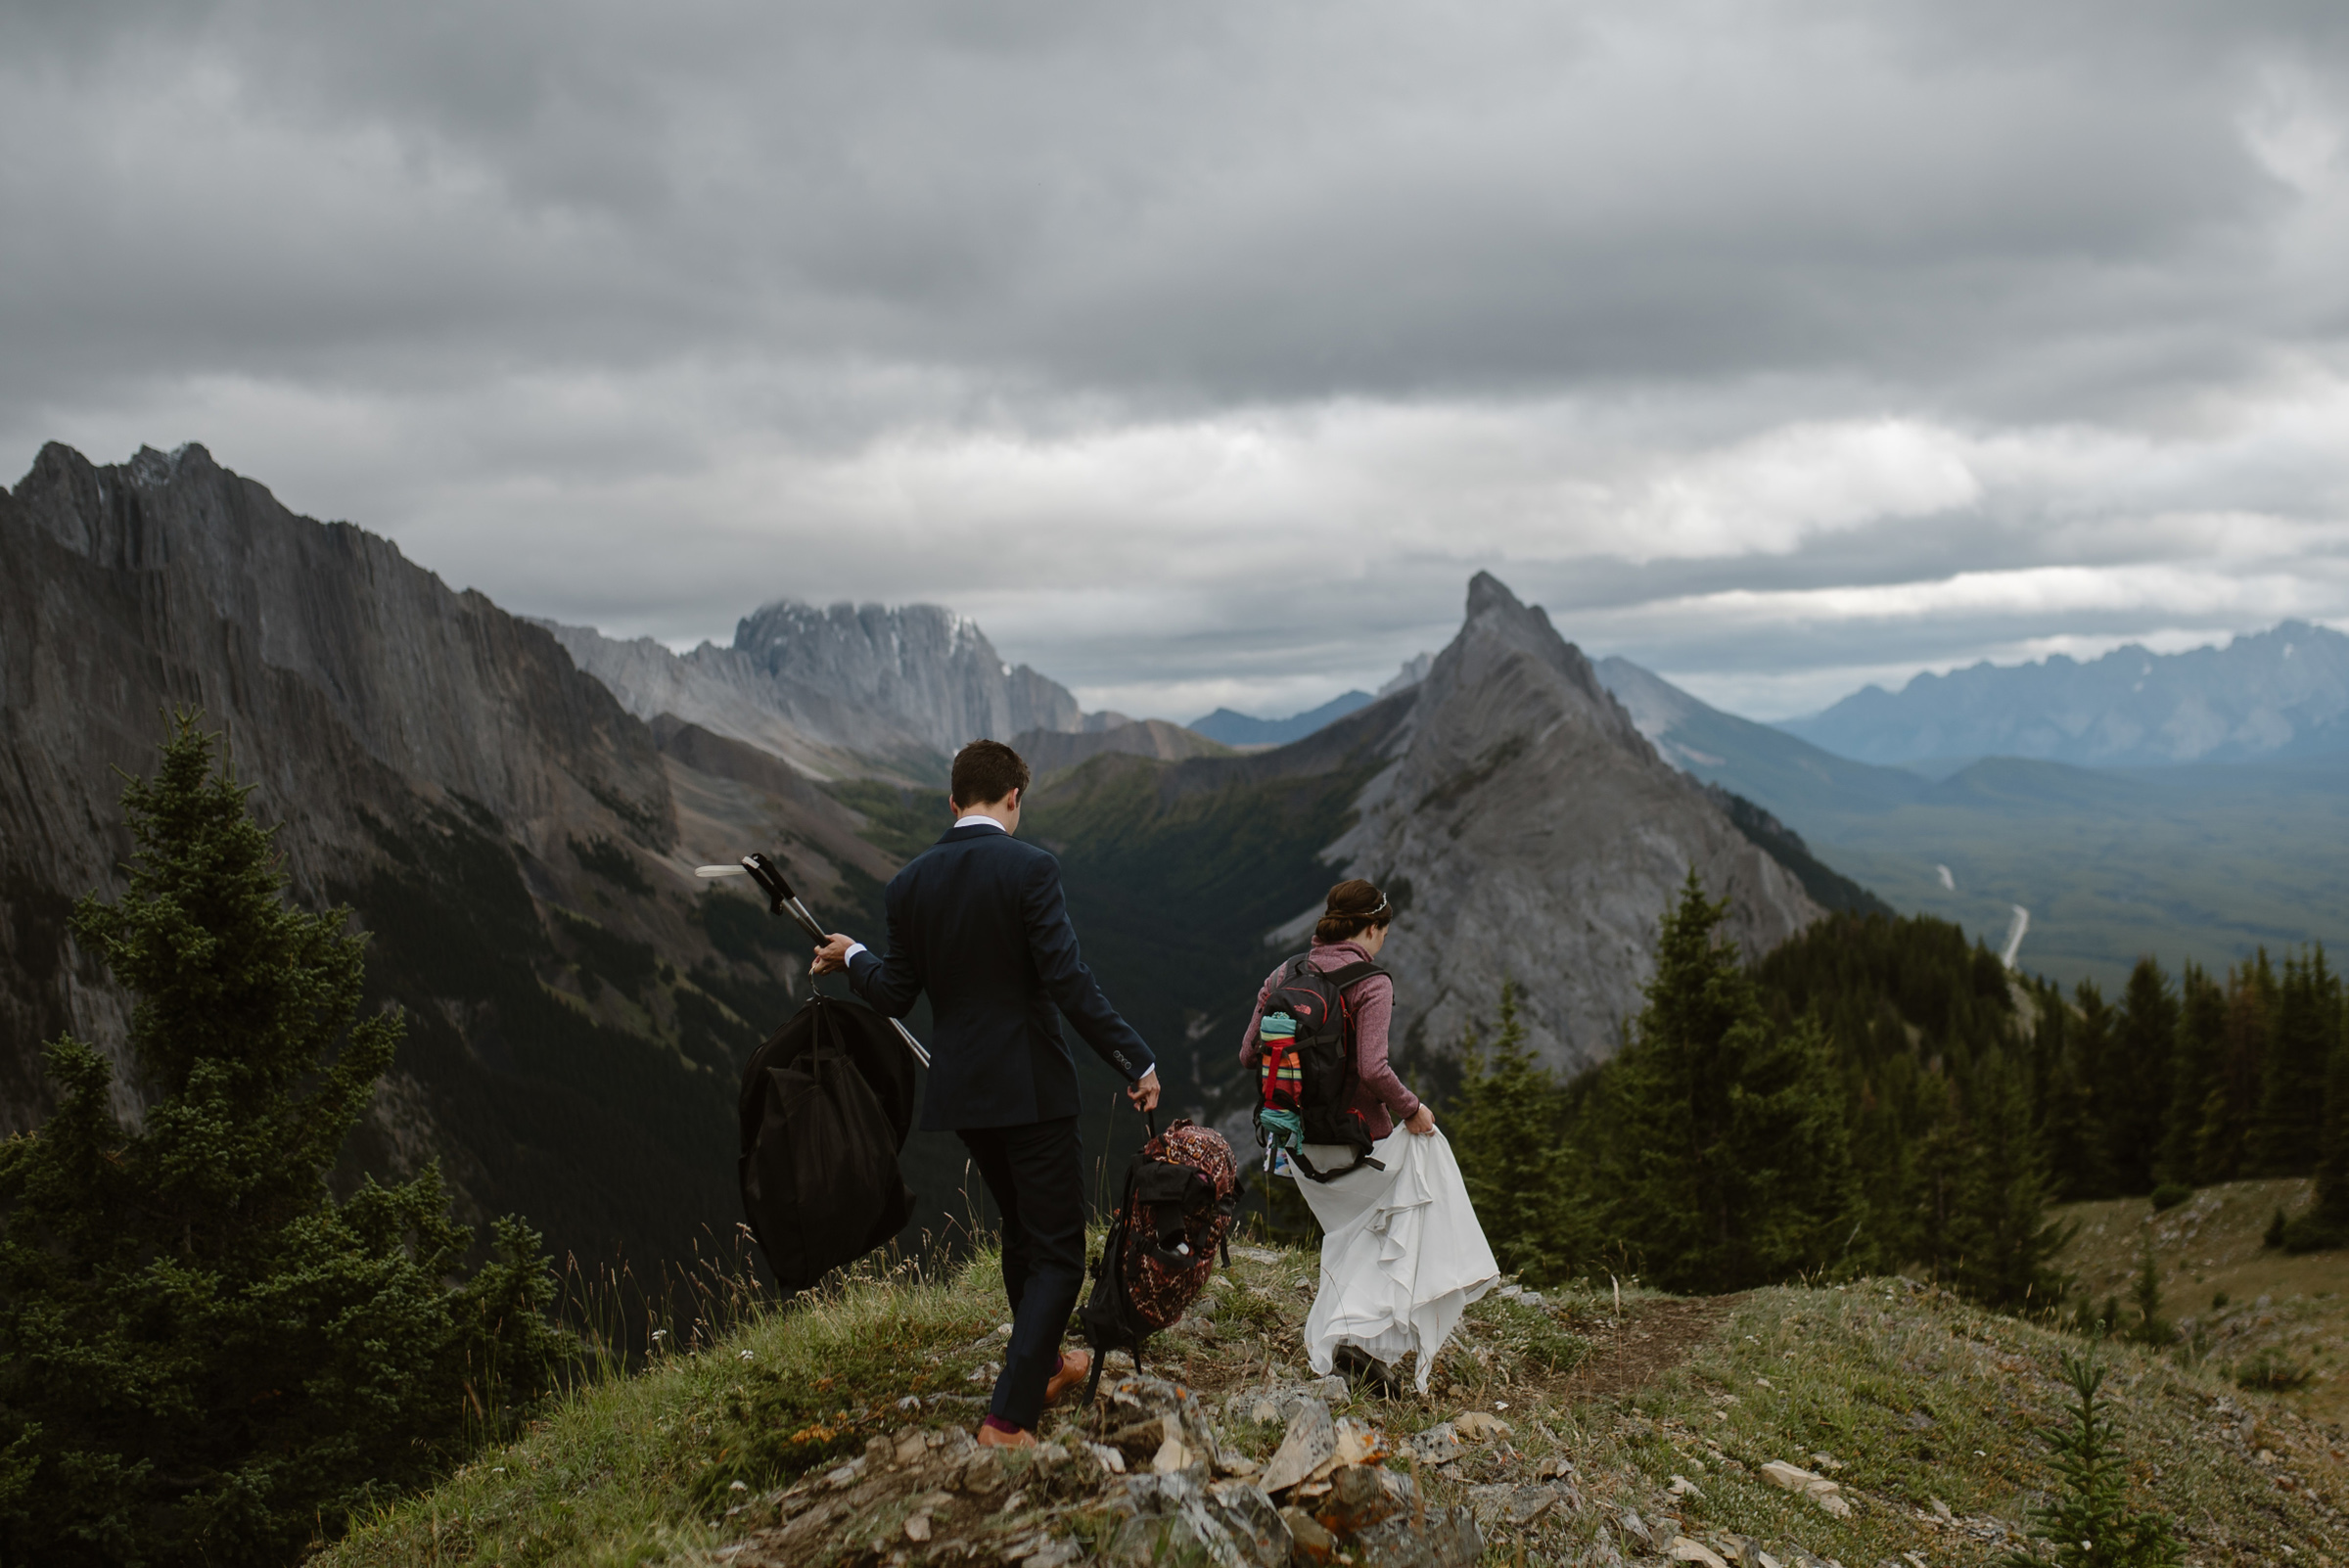 Elopement couple on mountain trail - photo by Virginia & Evan